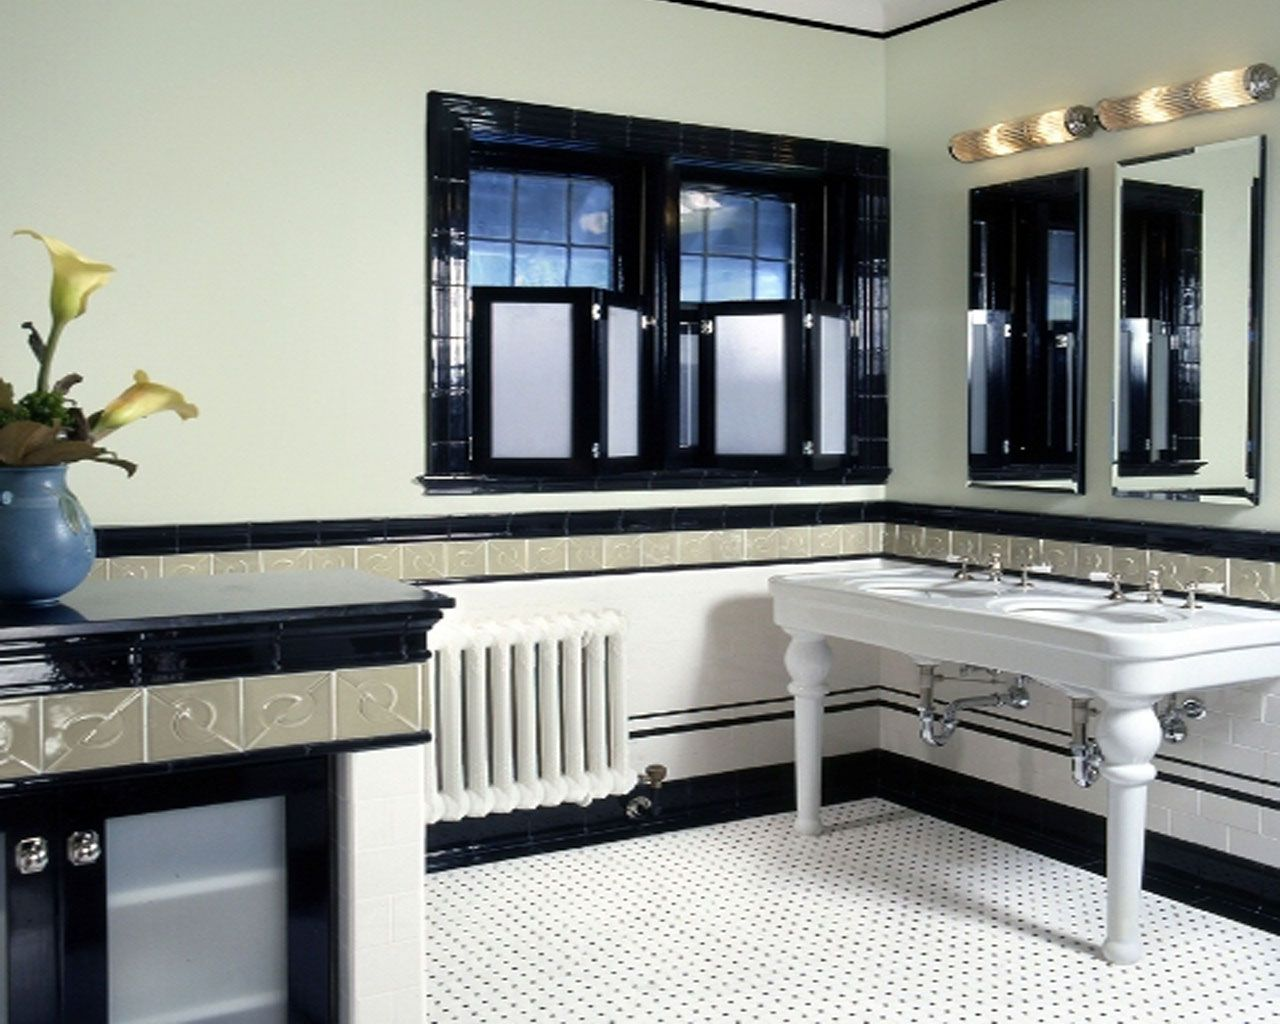 Brilliant Art Deco Bathroom Ideas About Remodel Home Design Styles Interior With